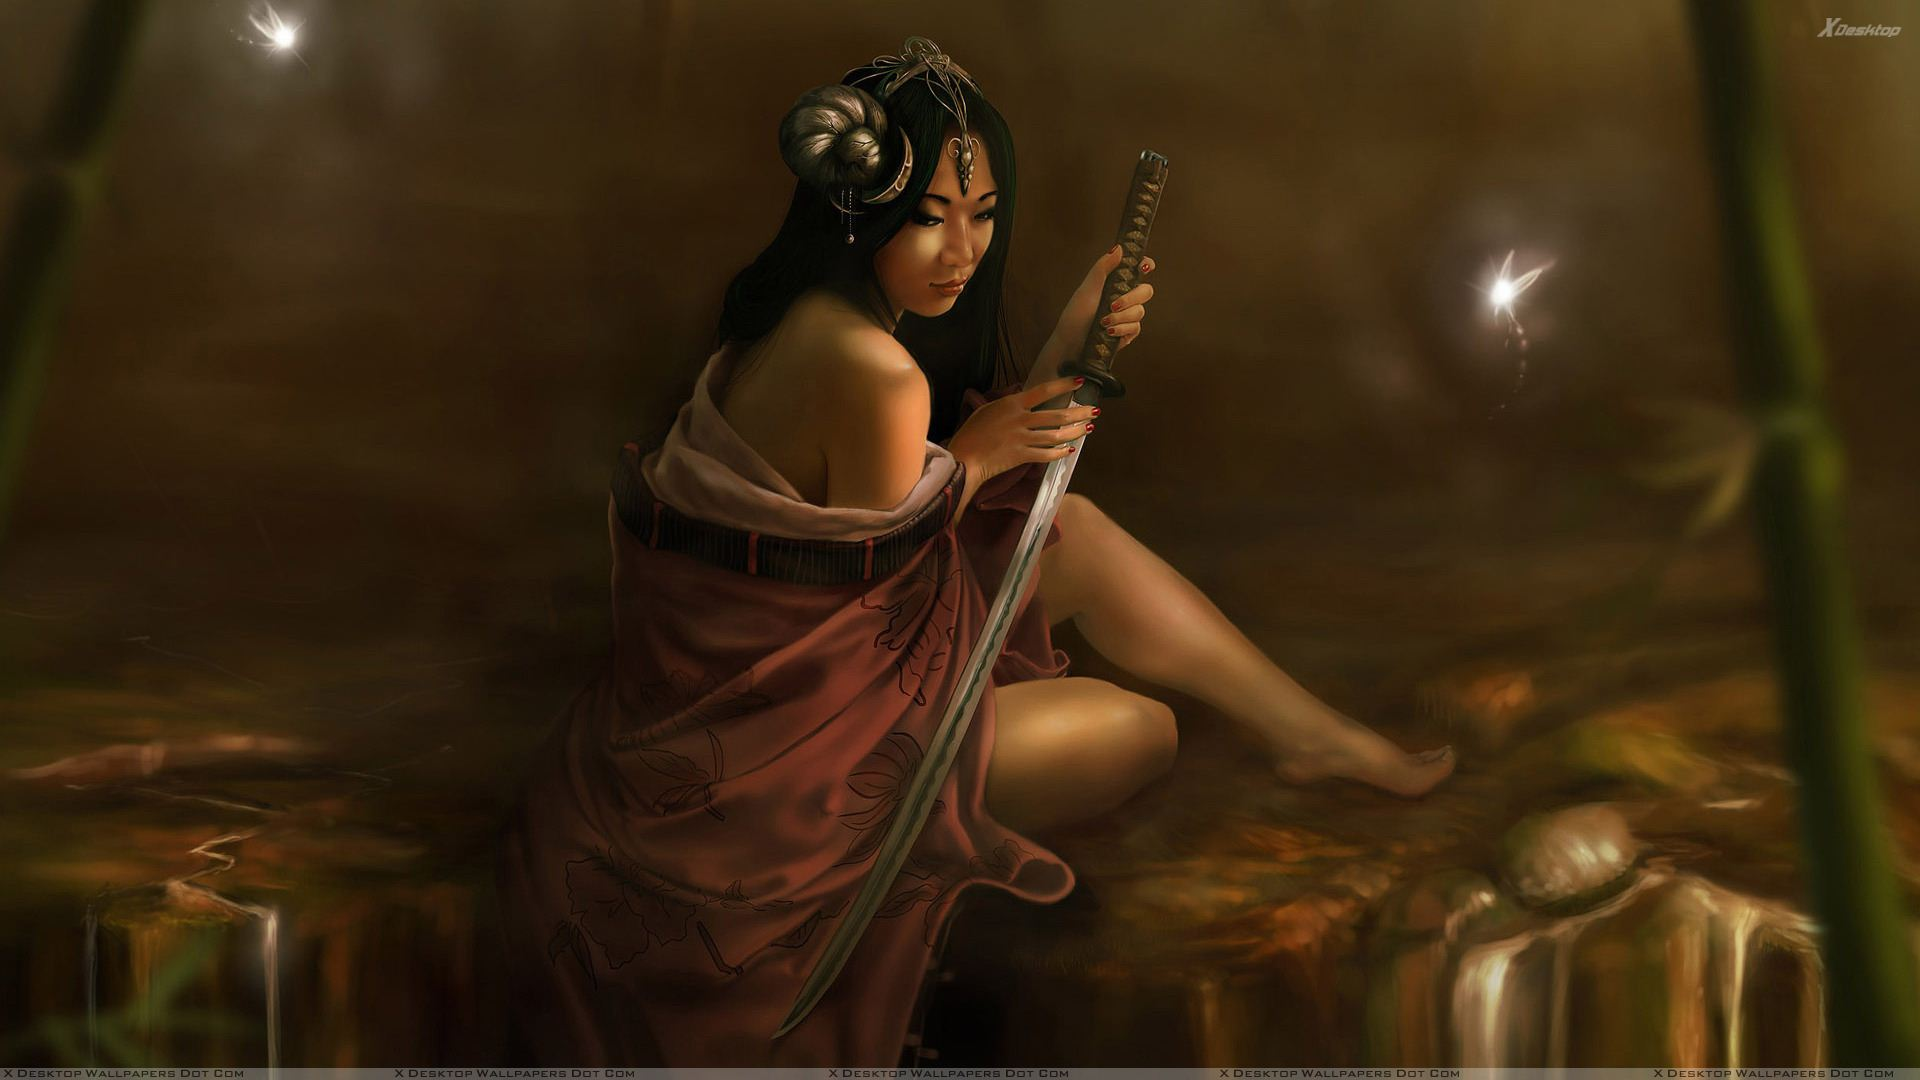 3d girl sitting with sword wallpaper you are viewing wallpaper titled 3d voltagebd Gallery